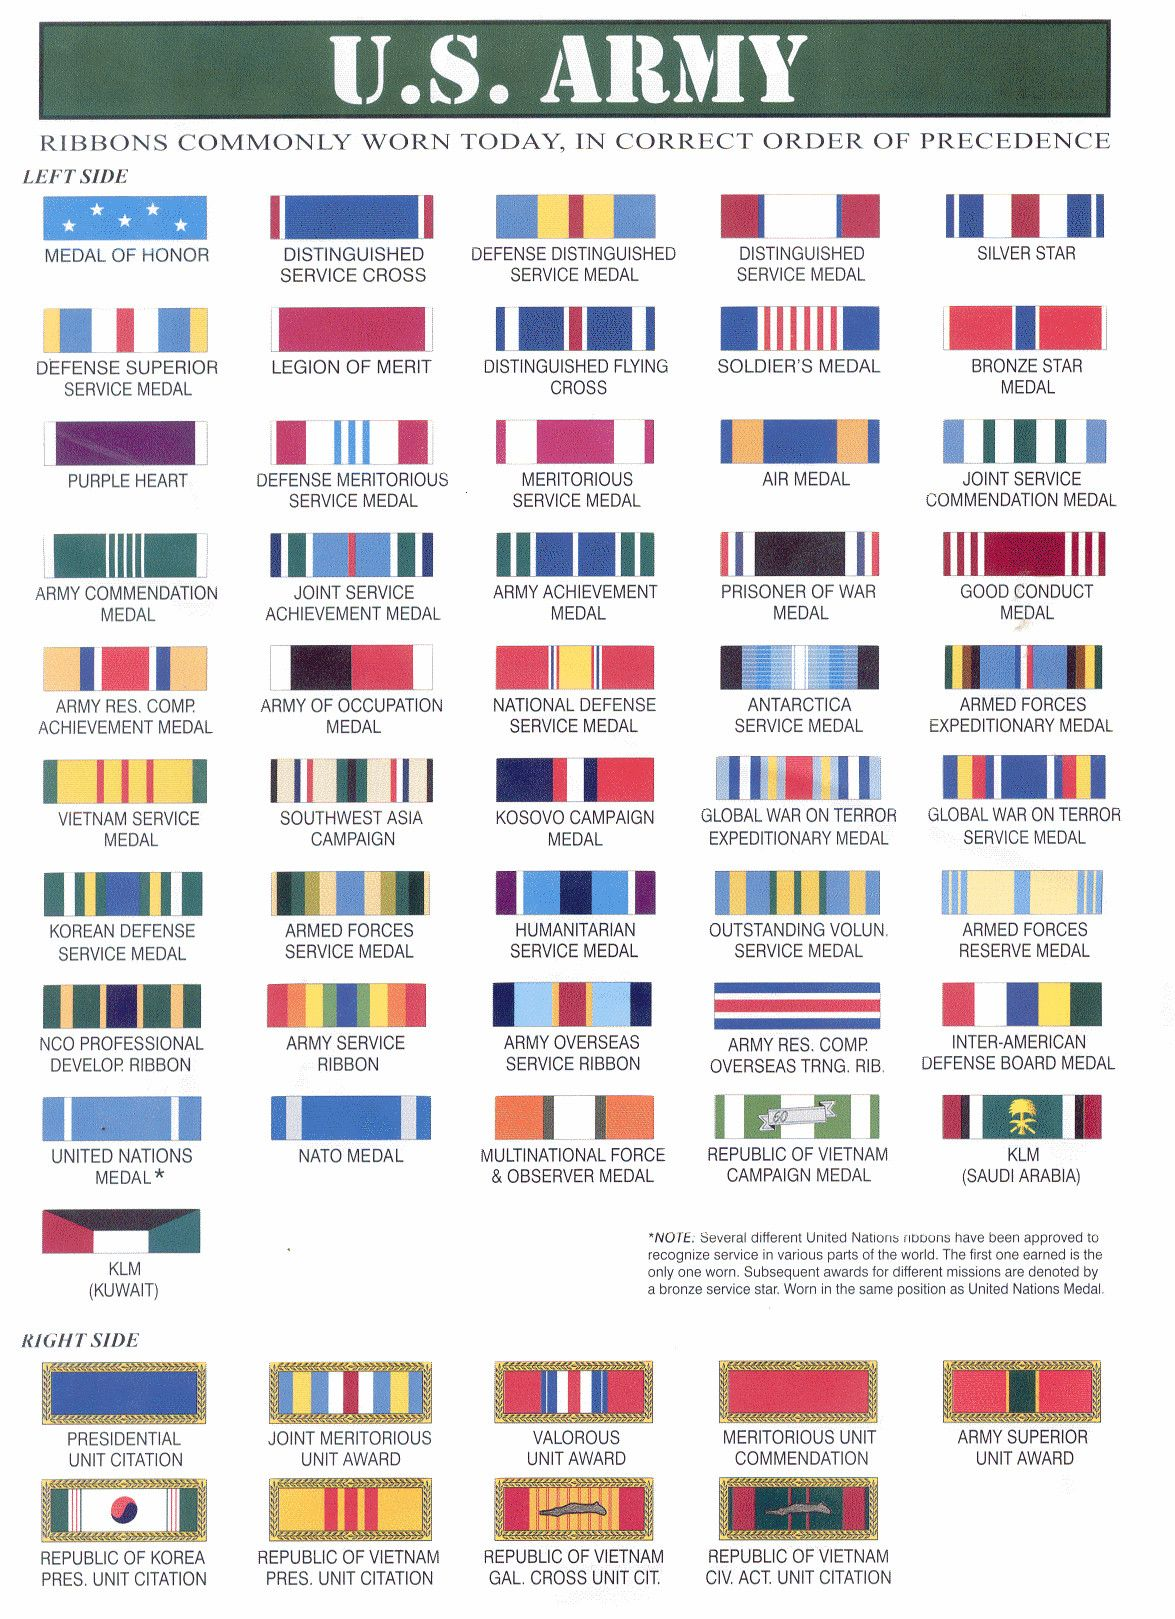 US Army Ribbons from Military Medals Chart , source